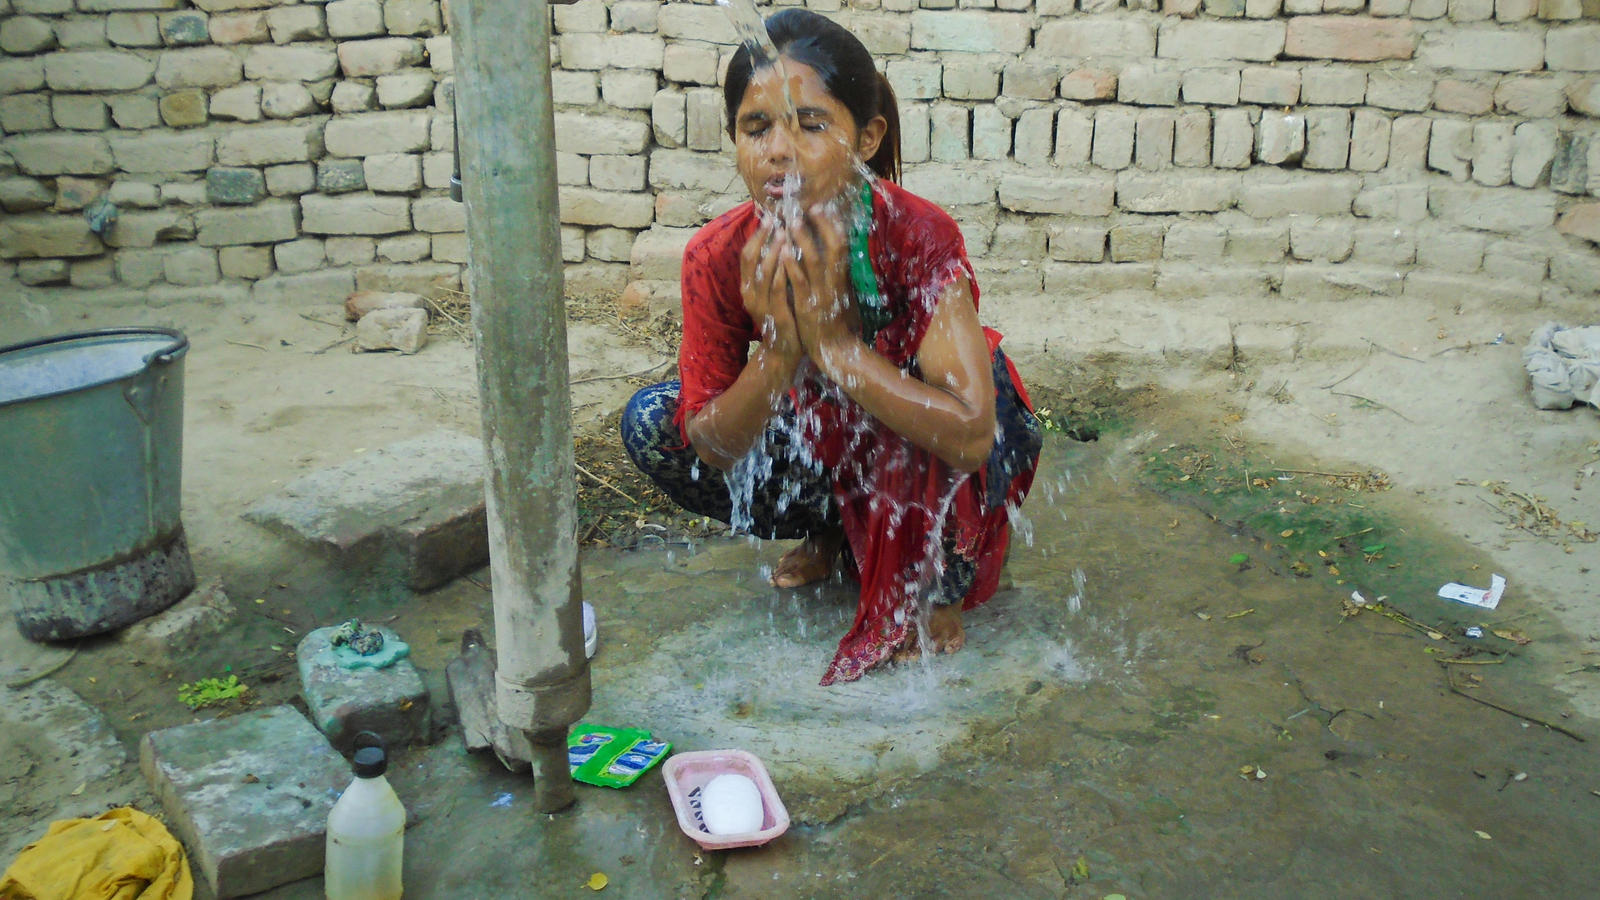 Gulshan, 9, washing her face in her home in the village of Waan Pitafi, Pakistan.